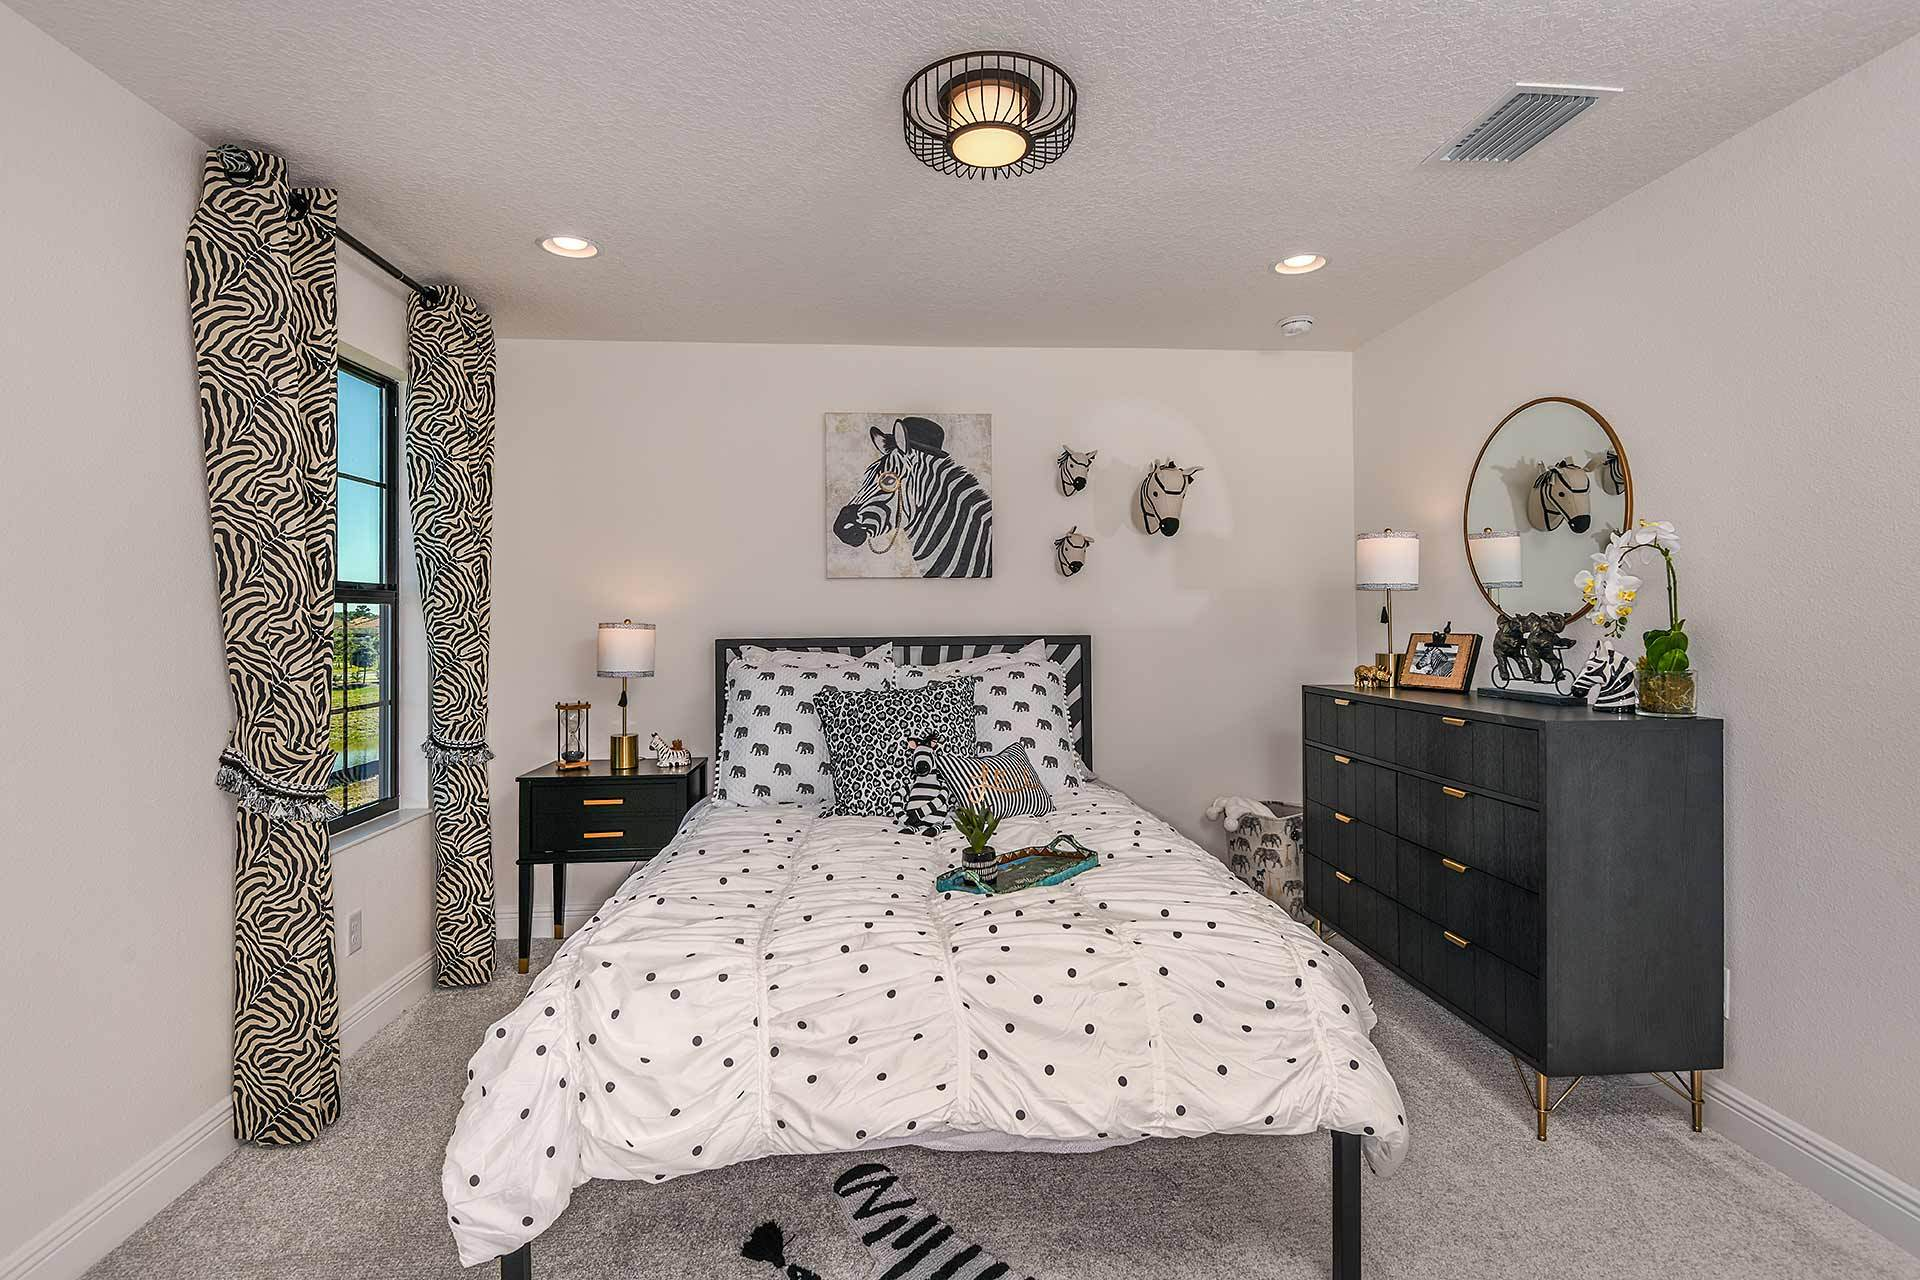 Bedroom featured in the Virginia Park By Homes by WestBay in Tampa-St. Petersburg, FL